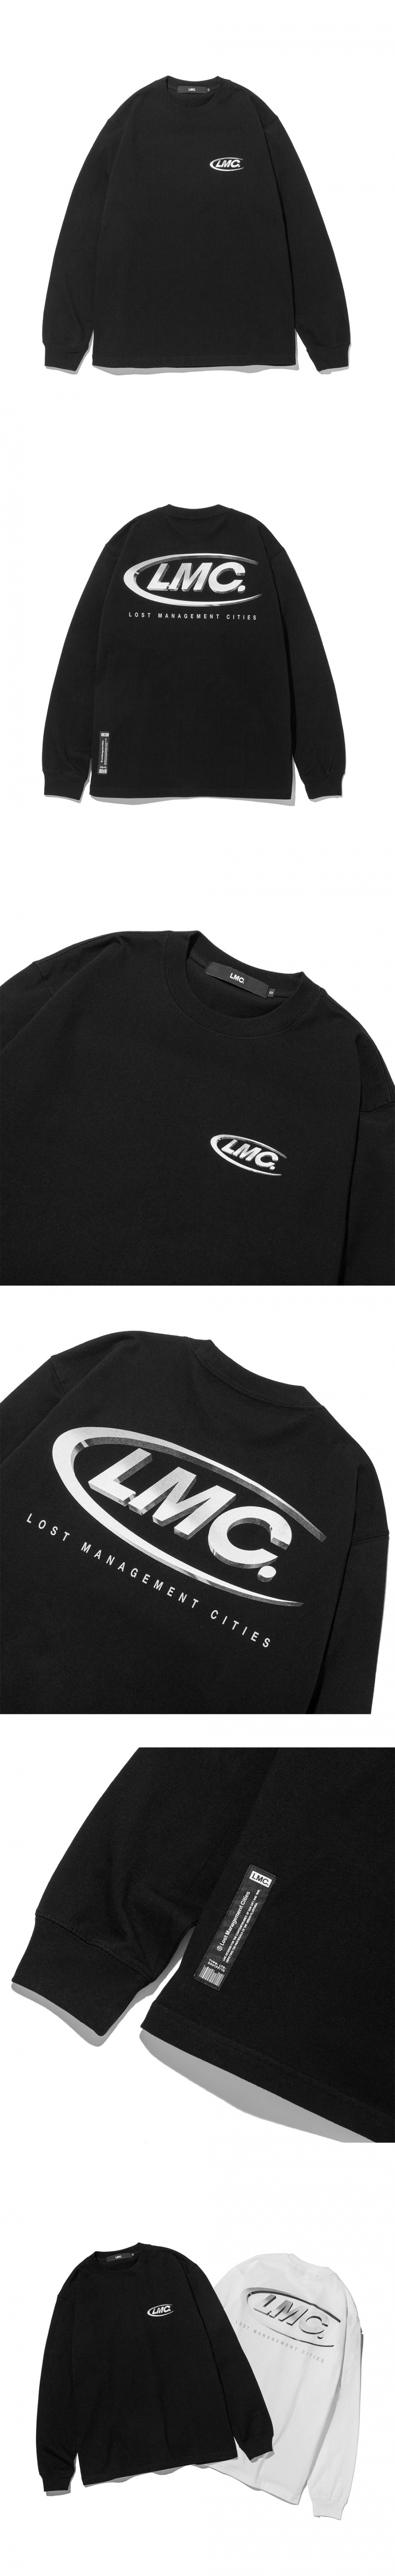 엘엠씨(LMC) LMC 3D CO LONG SLV TEE black